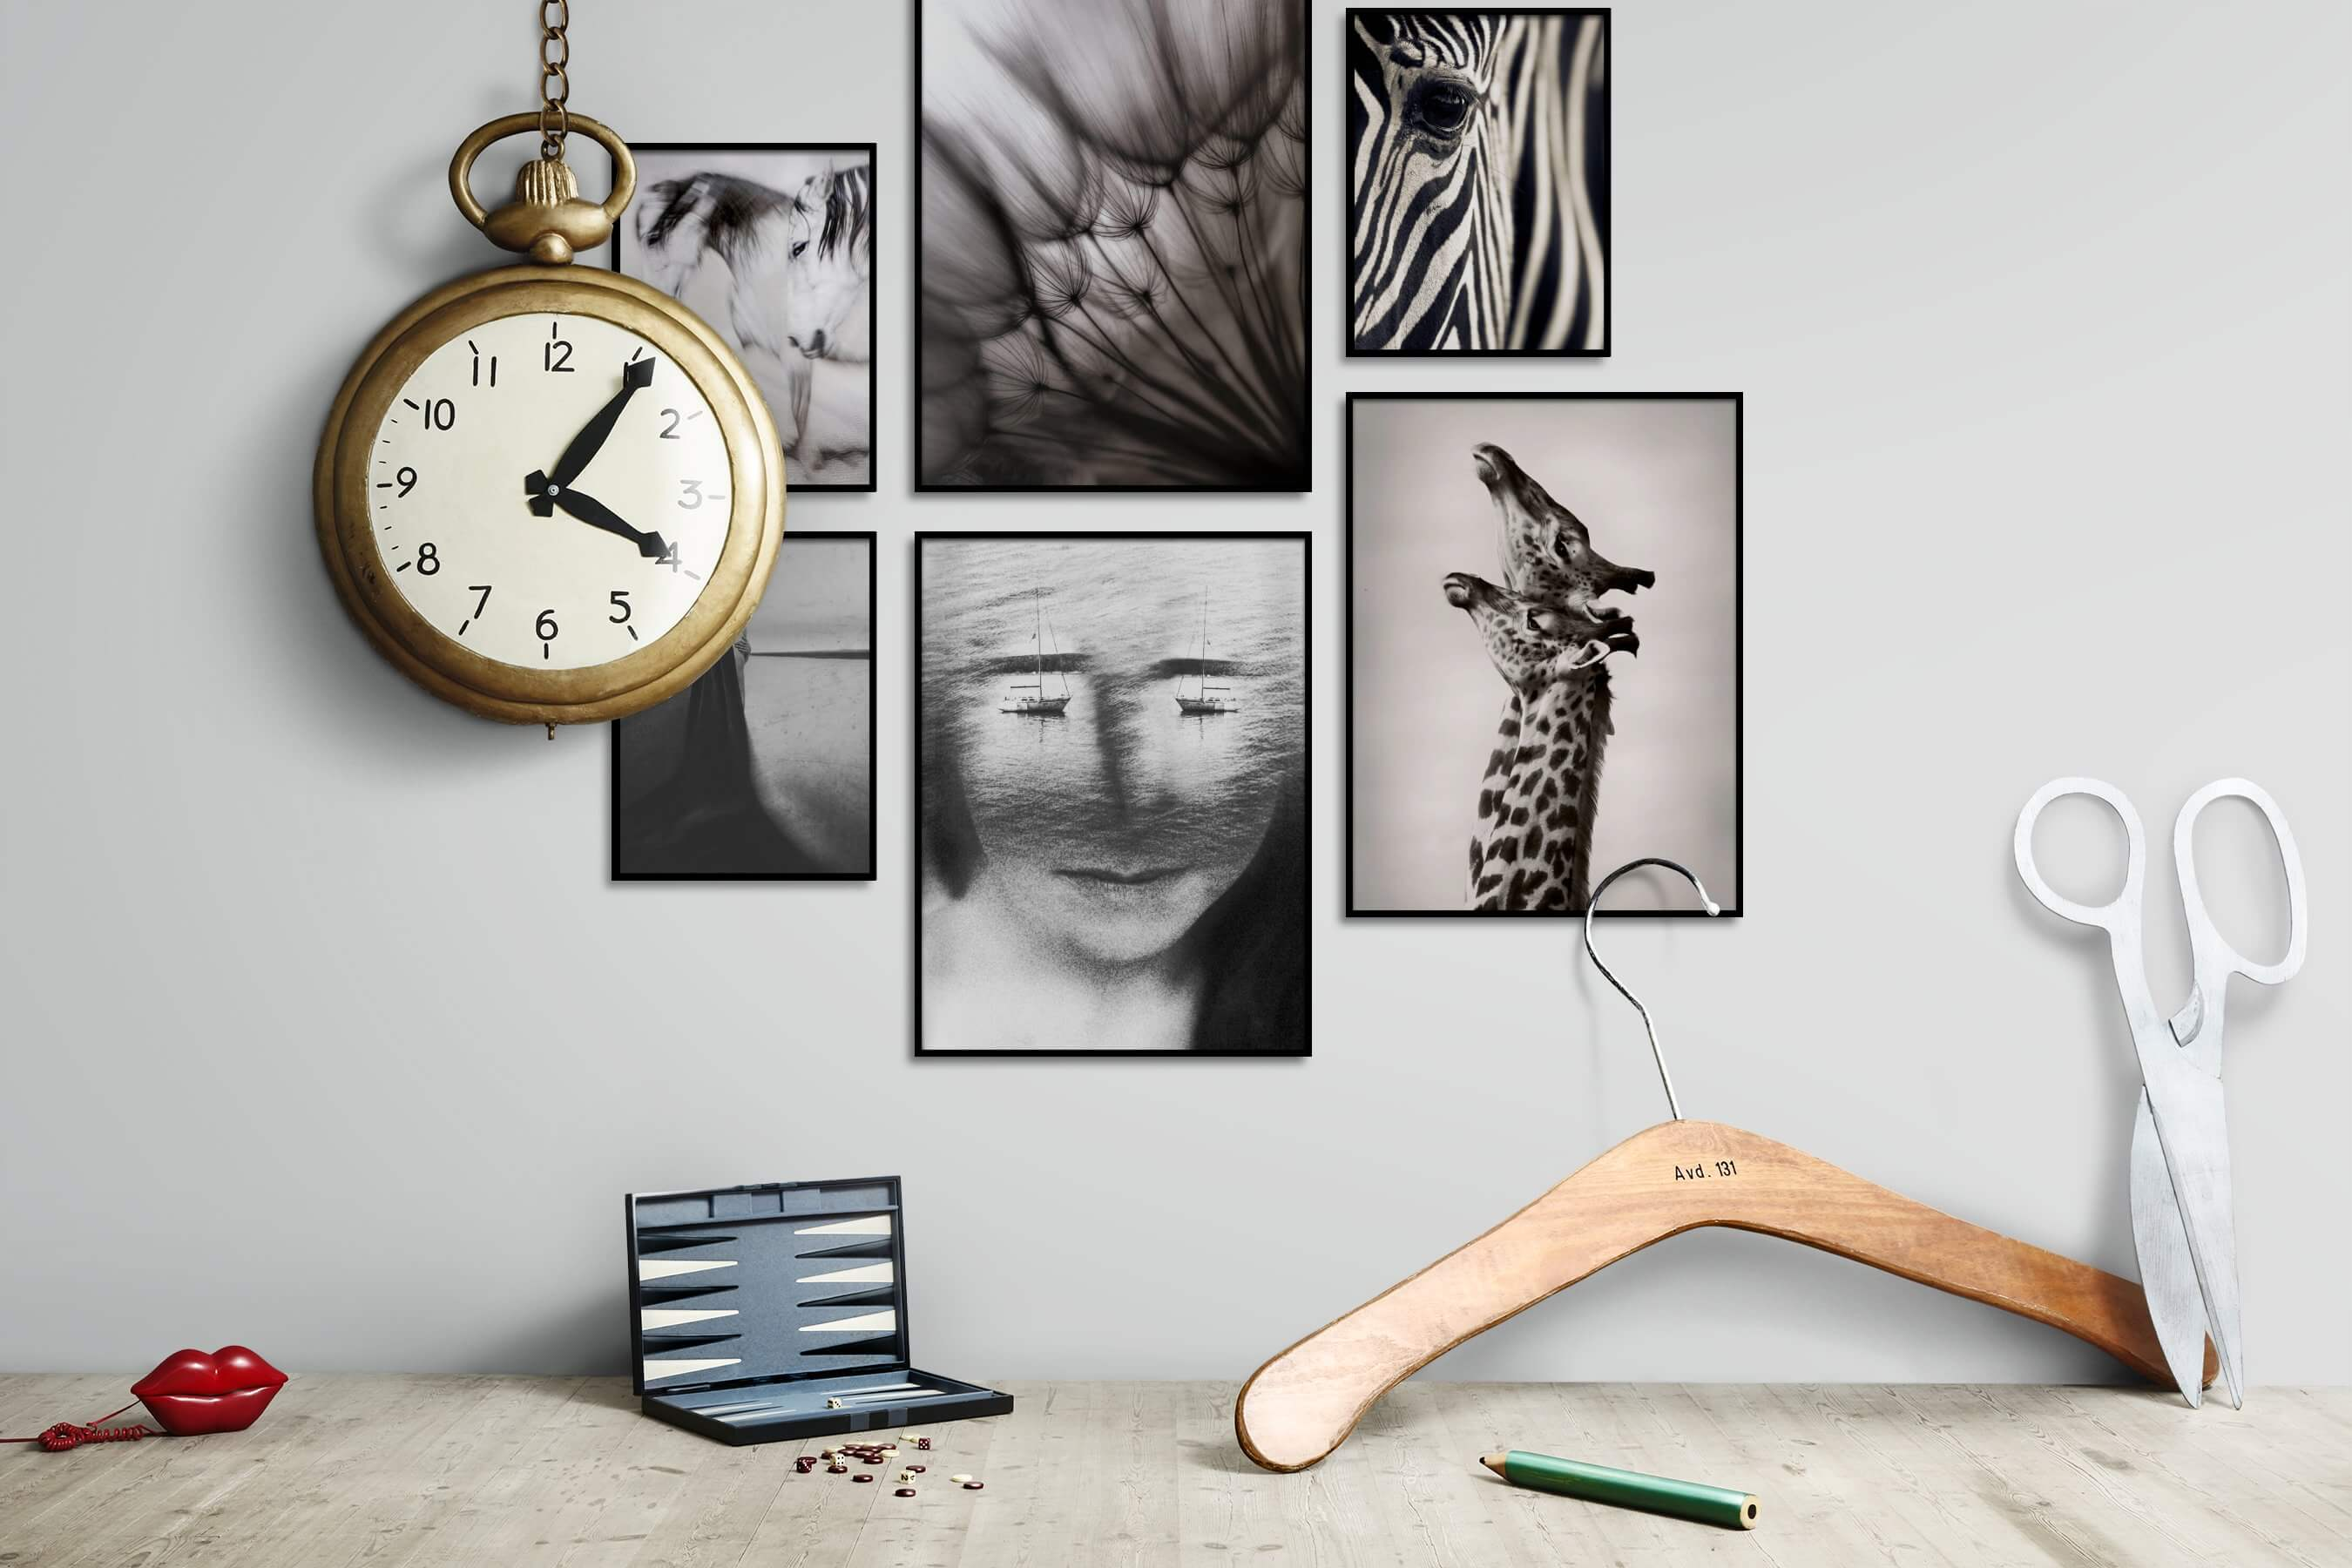 Gallery wall idea with six framed pictures arranged on a wall depicting Animals, Country Life, For the Moderate, Flowers & Plants, Mindfulness, Artsy, Black & White, and Vintage